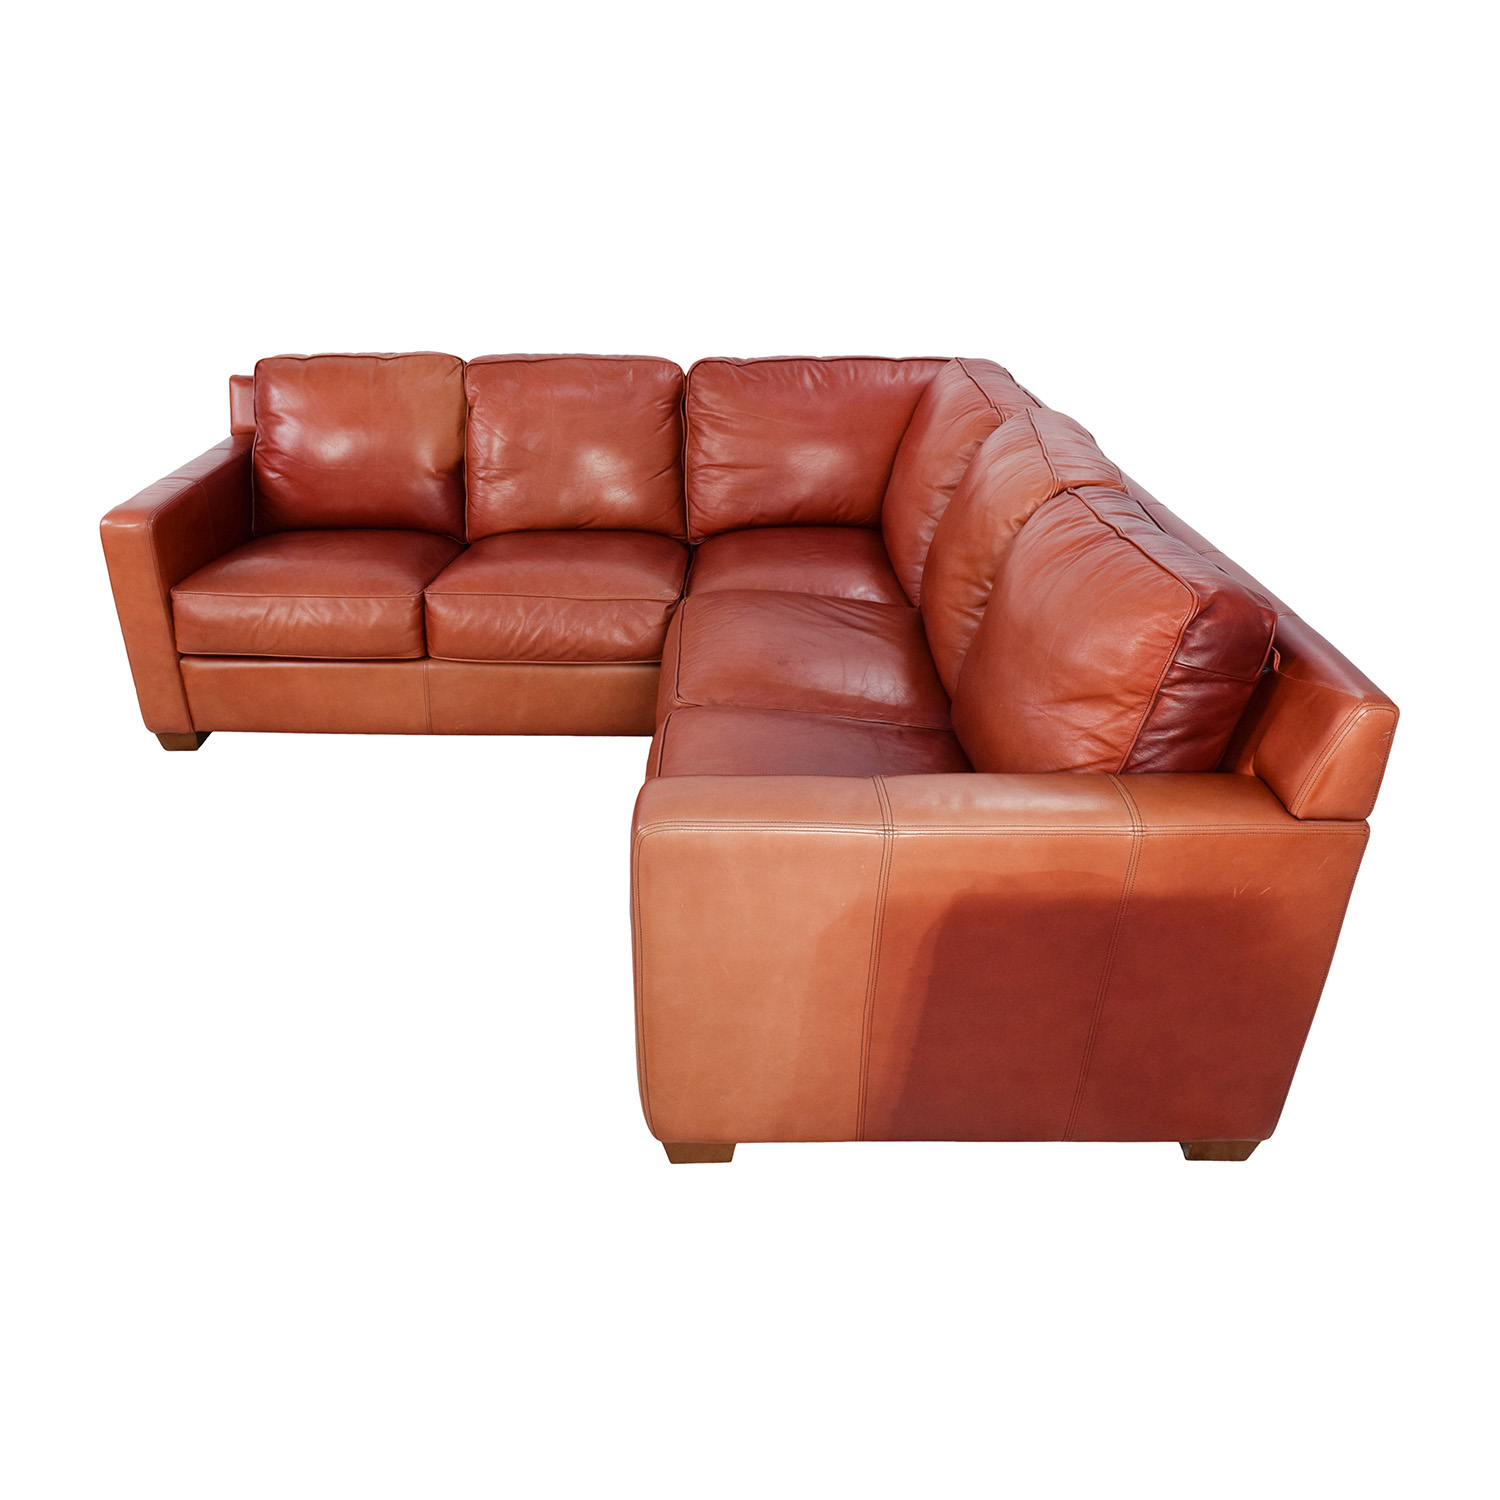 ... Thomasville Thomasville Red Leather Sectional Sectionals ...  sc 1 st  Furnishare : red leather sectional - Sectionals, Sofas & Couches